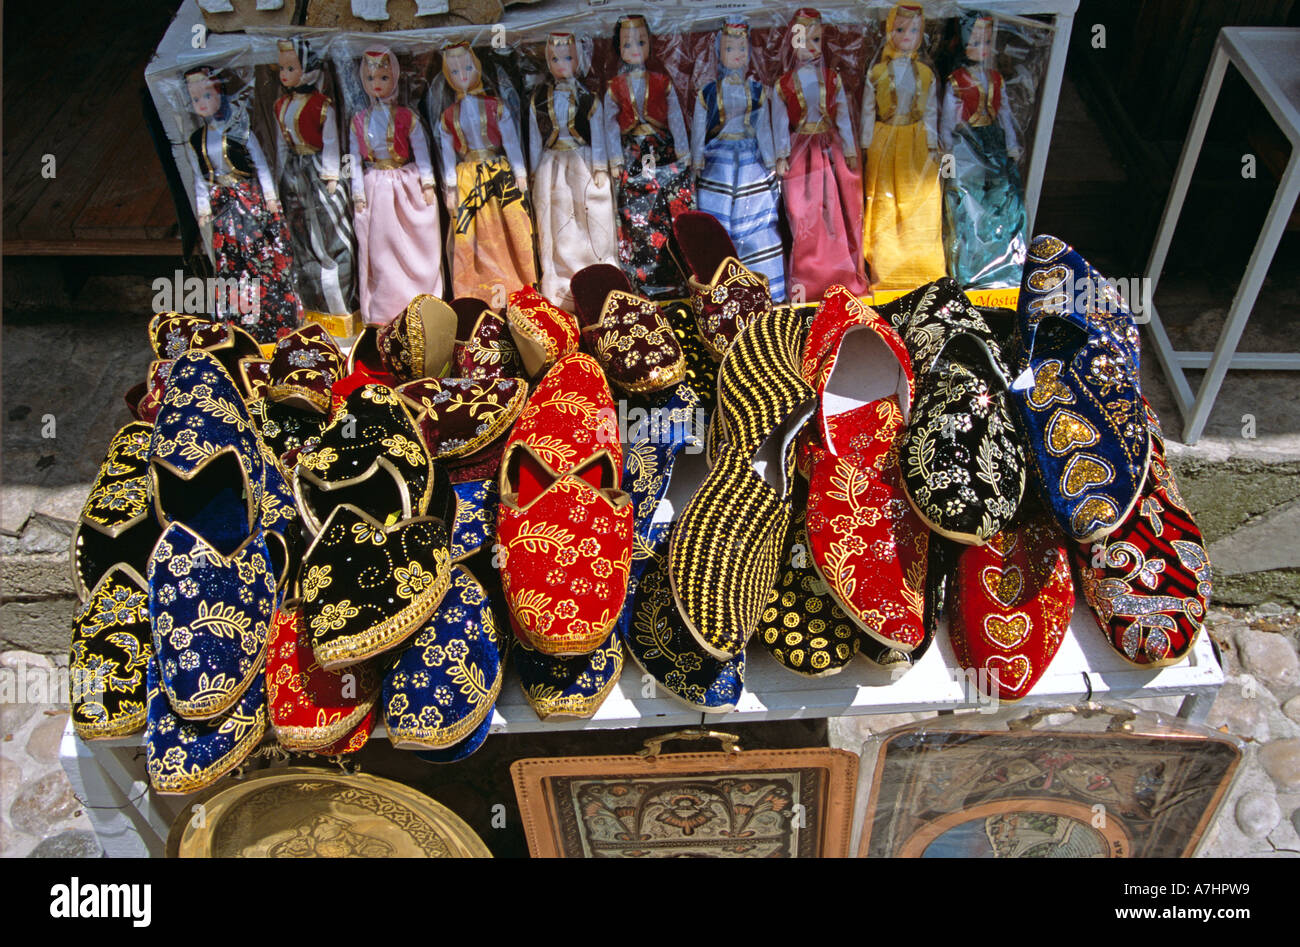 Turkish Slippers Stall Stock Photos Amp Turkish Slippers